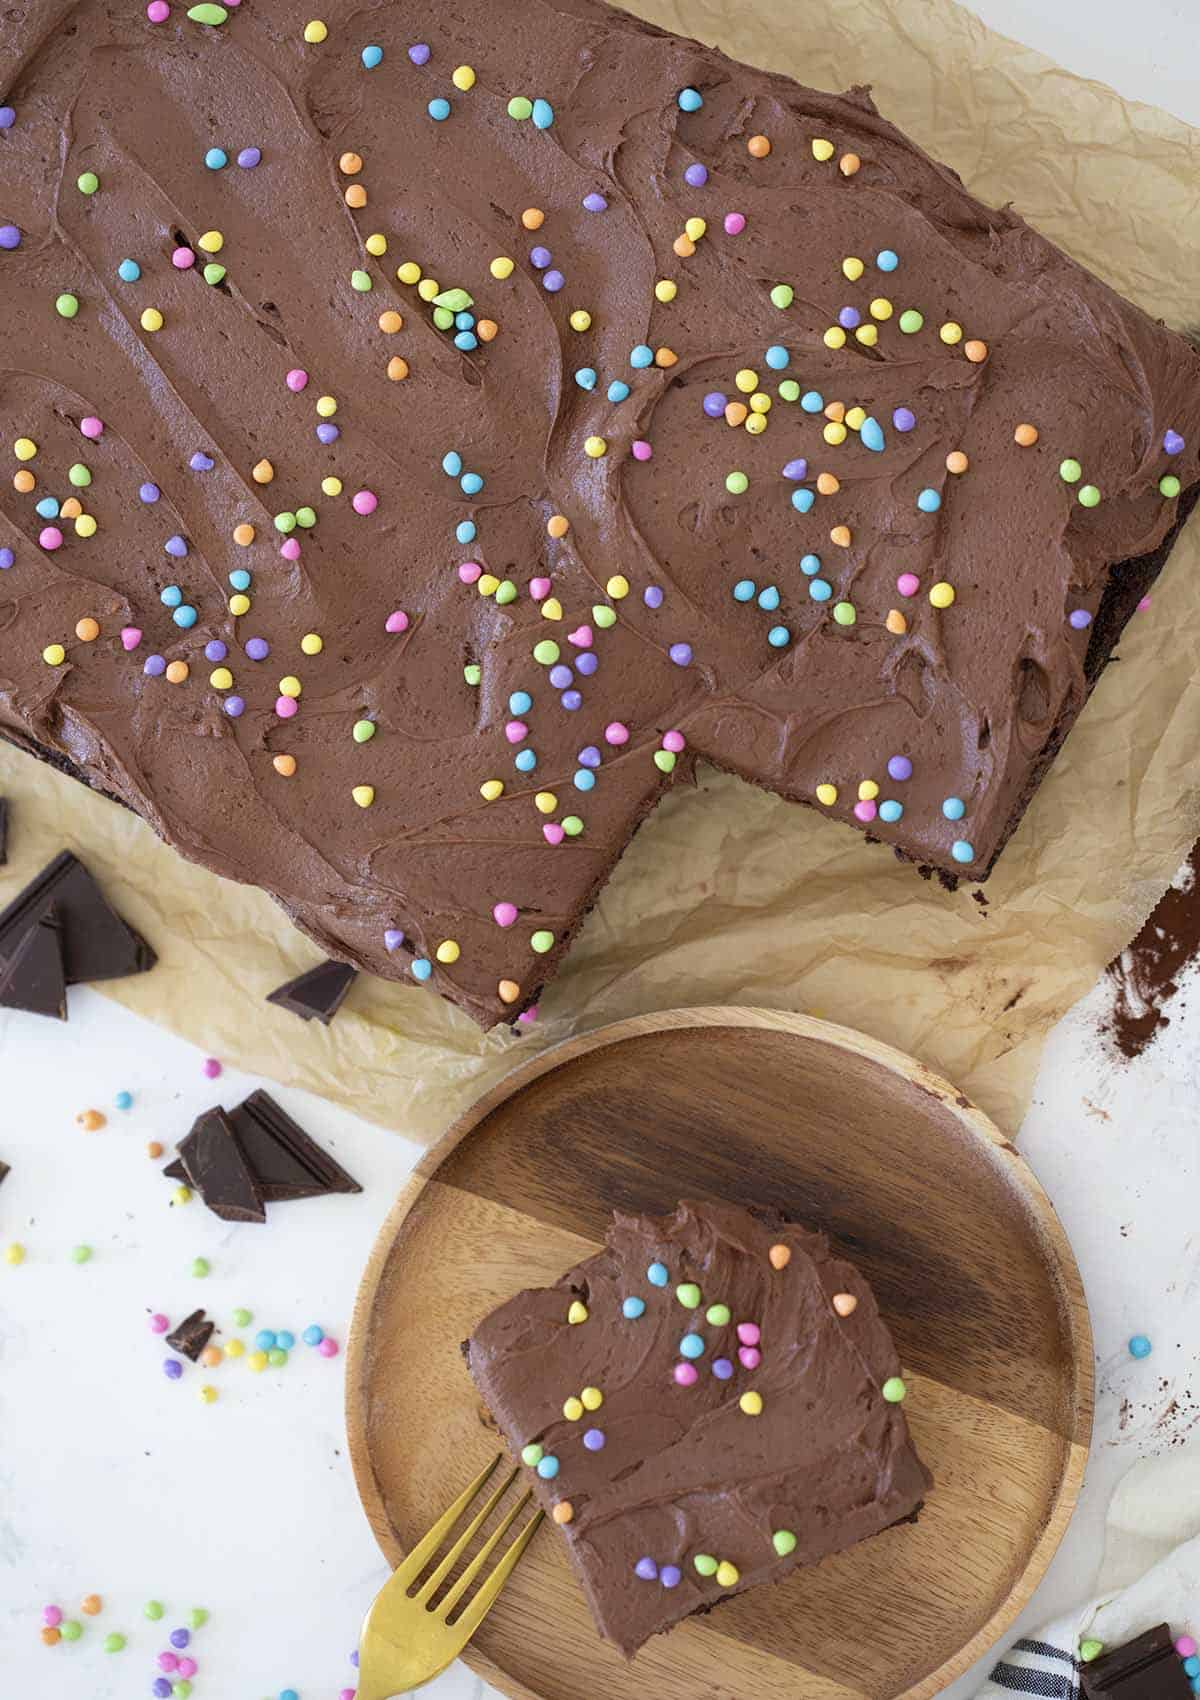 A top down shot of a chocolate sheet cake topped with sprinkles.